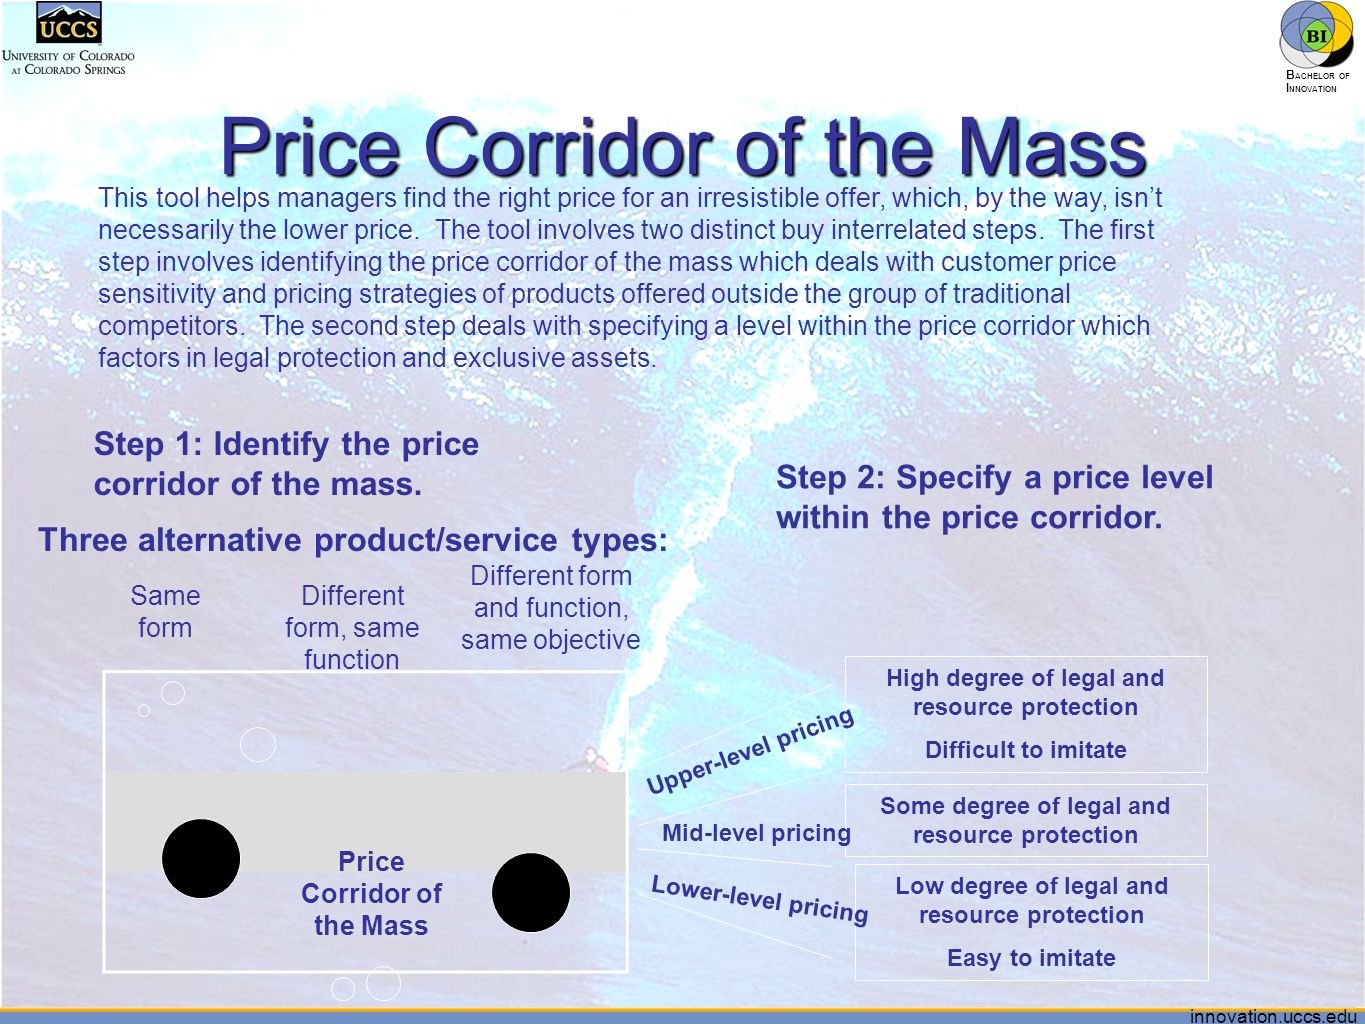 innovation.uccs.edu B ACHELOR OF I NNOVATION ™ Price Corridor of the Mass This tool helps managers find the right price for an irresistible offer, whi